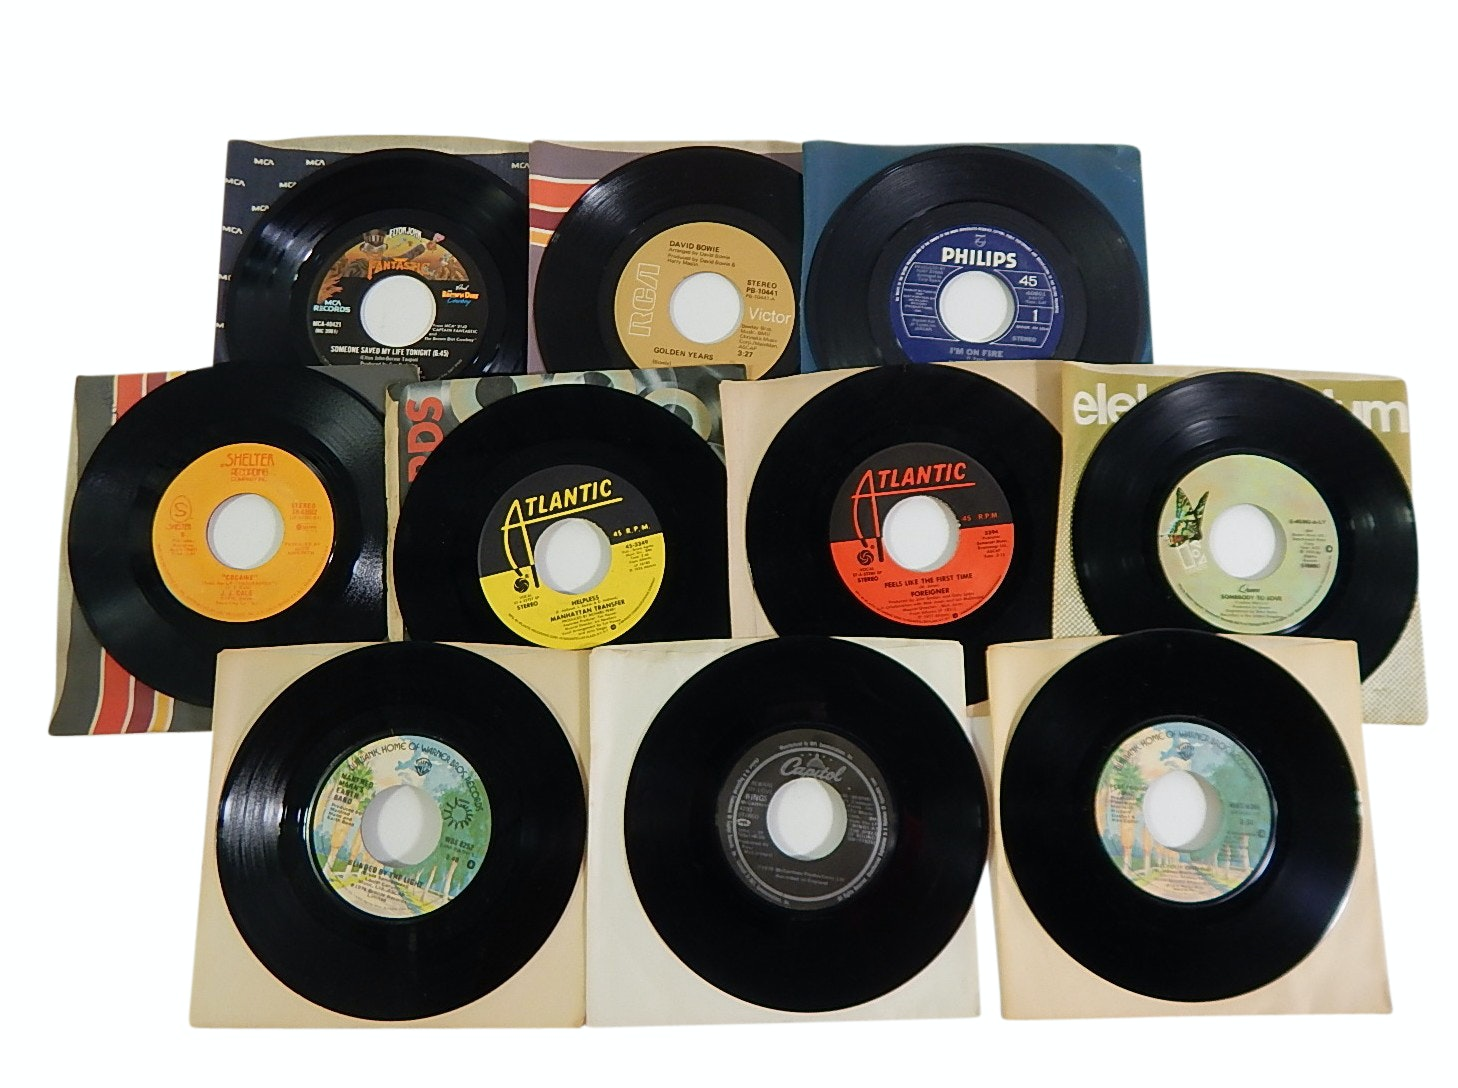 1960s/1970s 45 RPM Record Albums with R&B, Country, Rock, Pop - Bowie,Queen